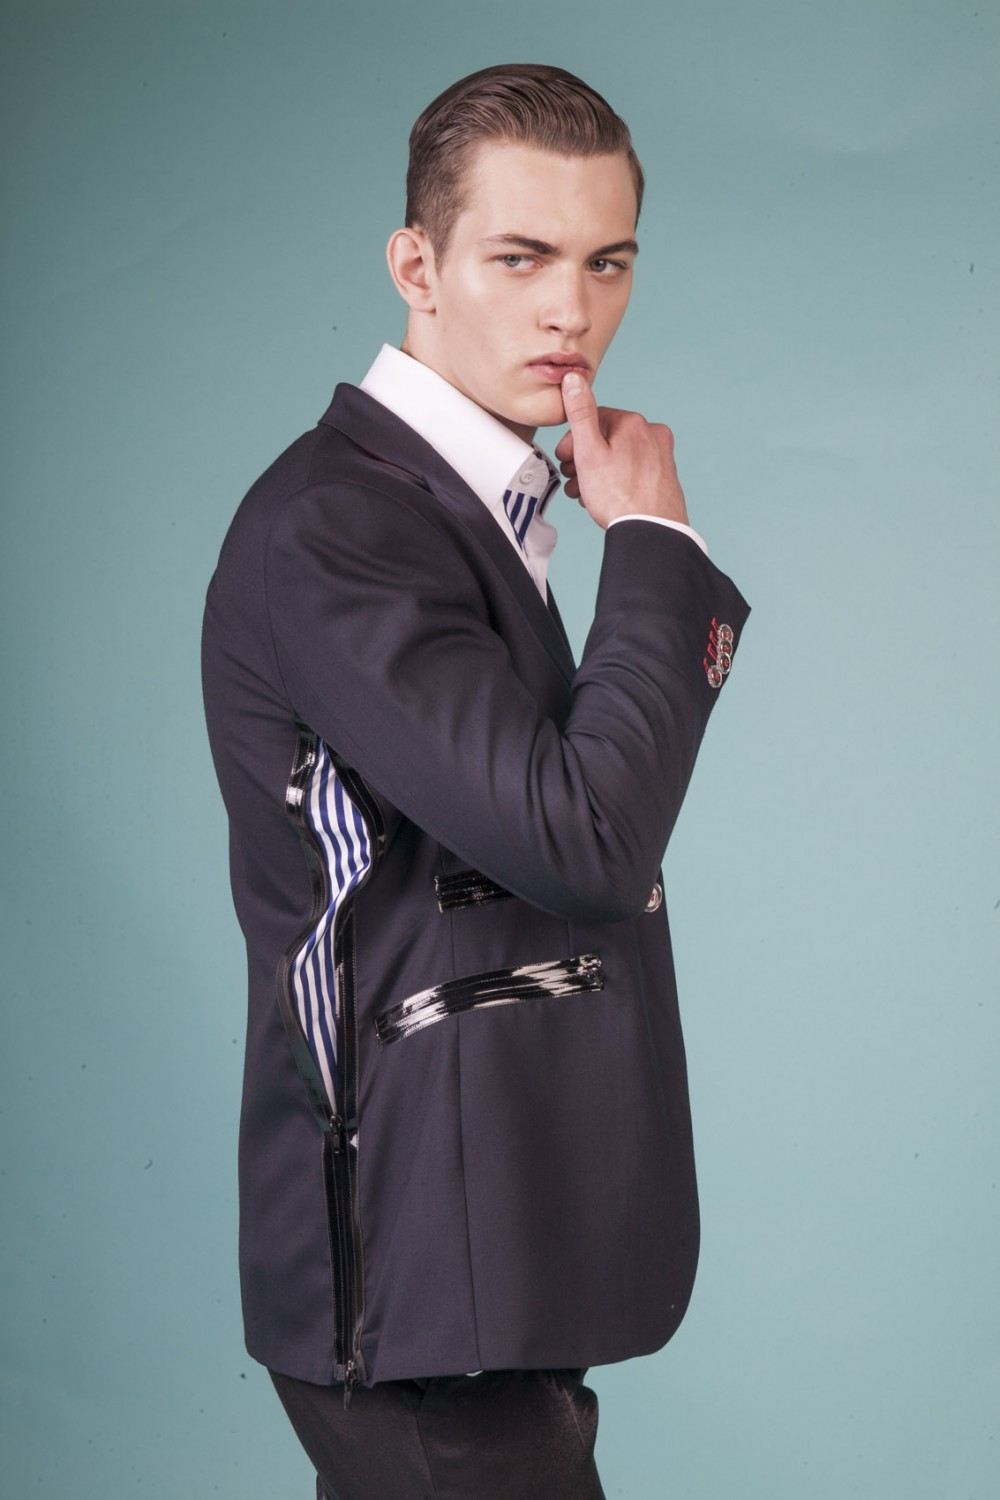 Colour: Midnight blue - Navy and white stripes Fabric: Stretch wool - Glossy black zippers Lining: Viscose